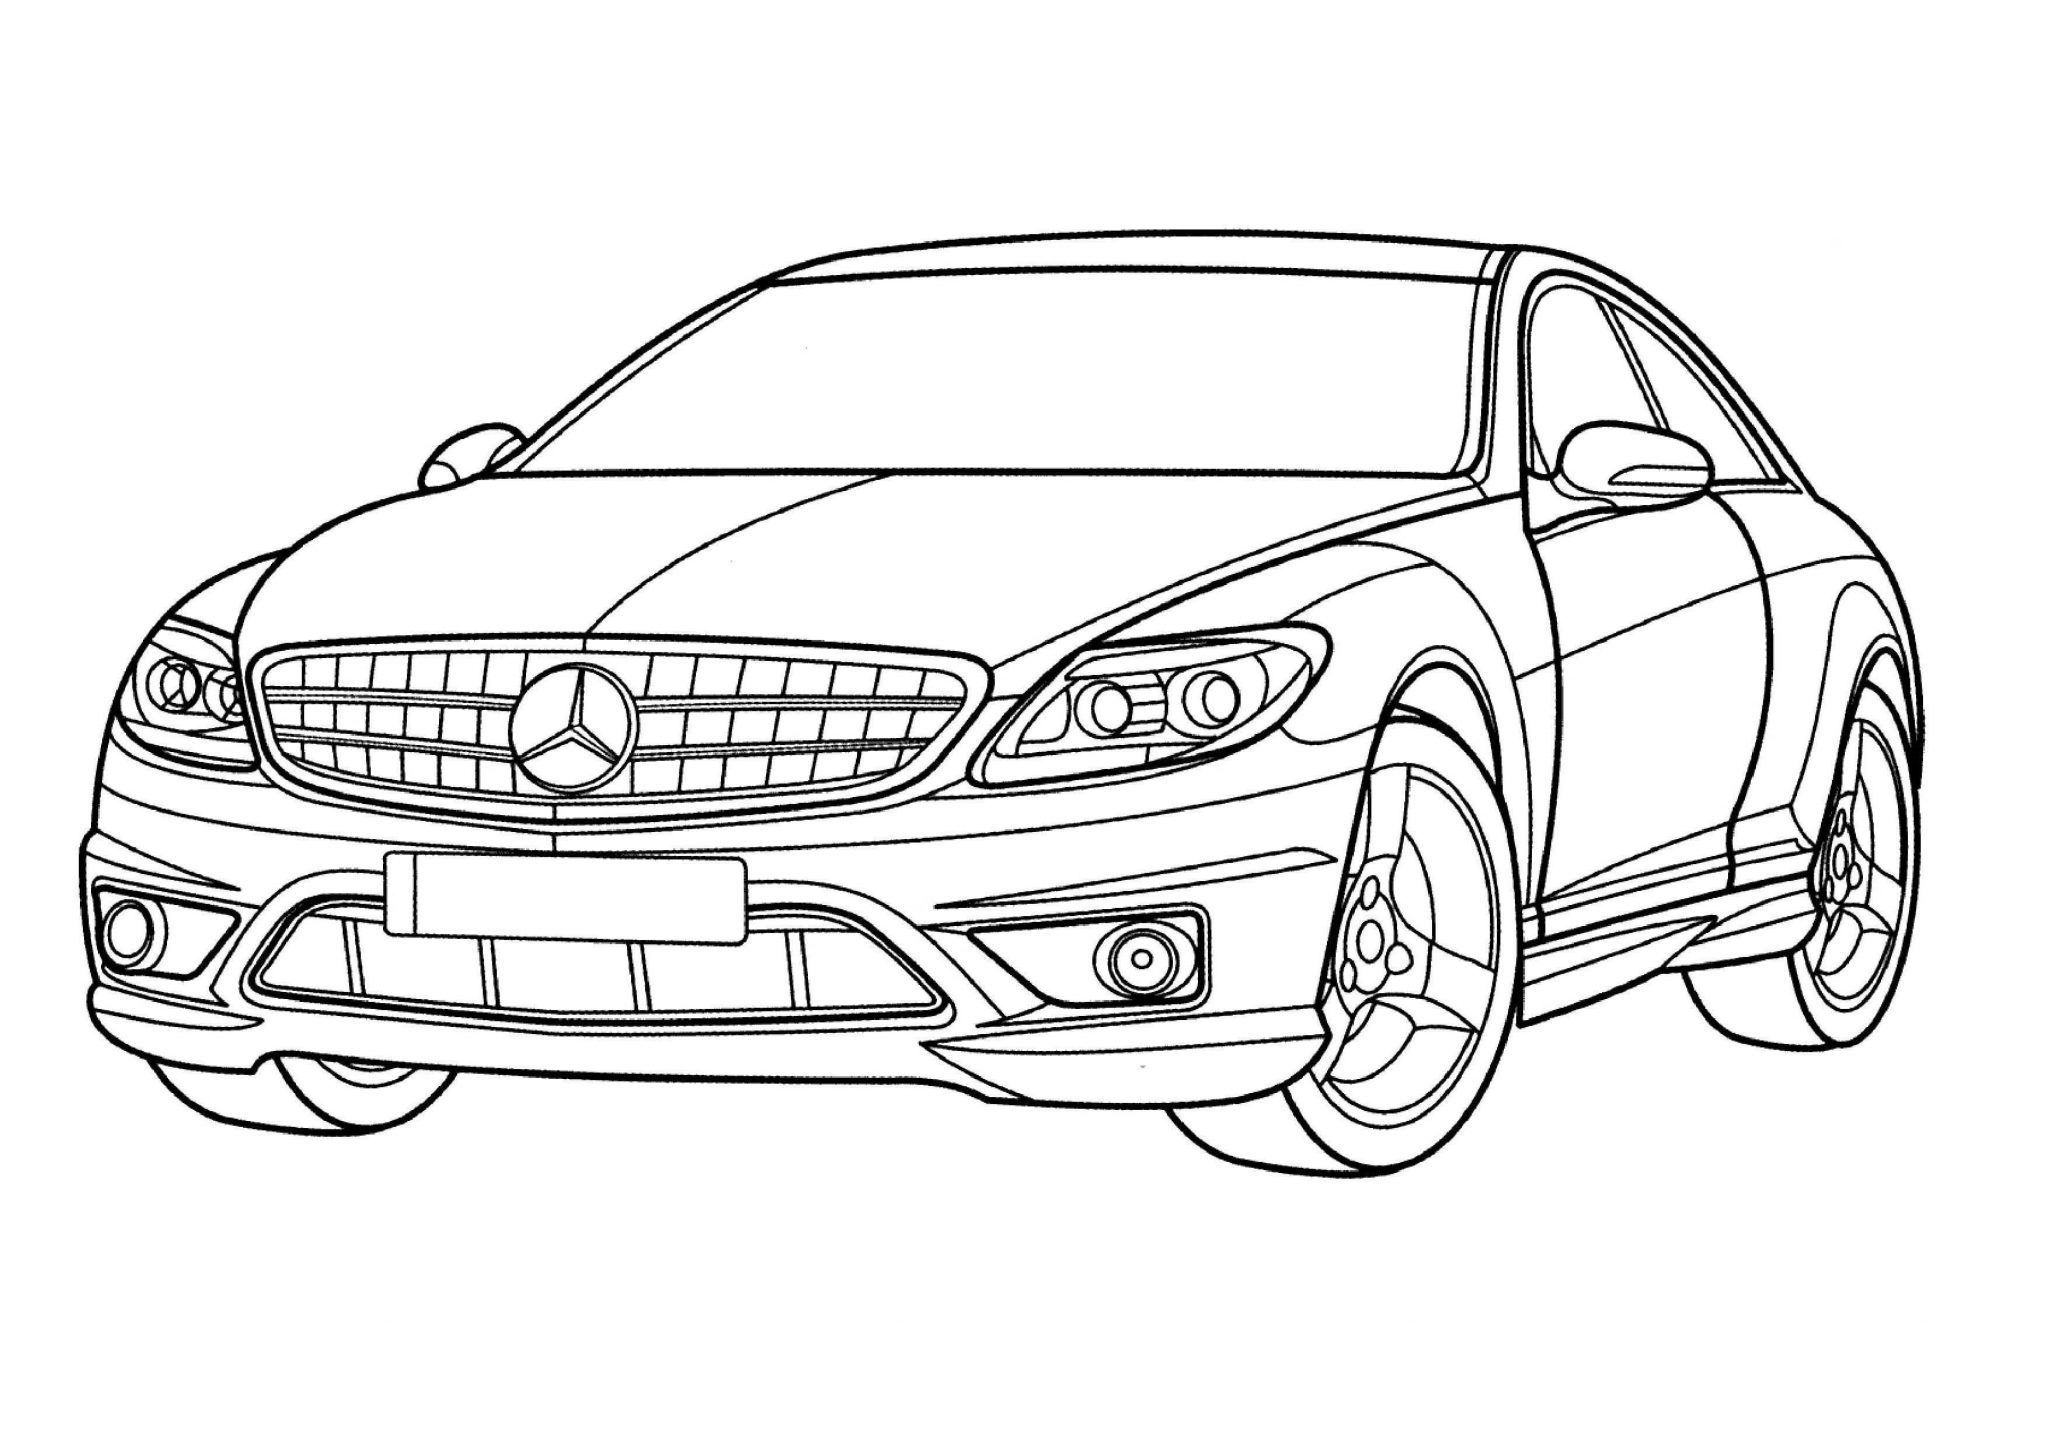 30 Car Coloring Pages And Print Cars Coloring Pages Coloring Pages Sports Coloring Pages